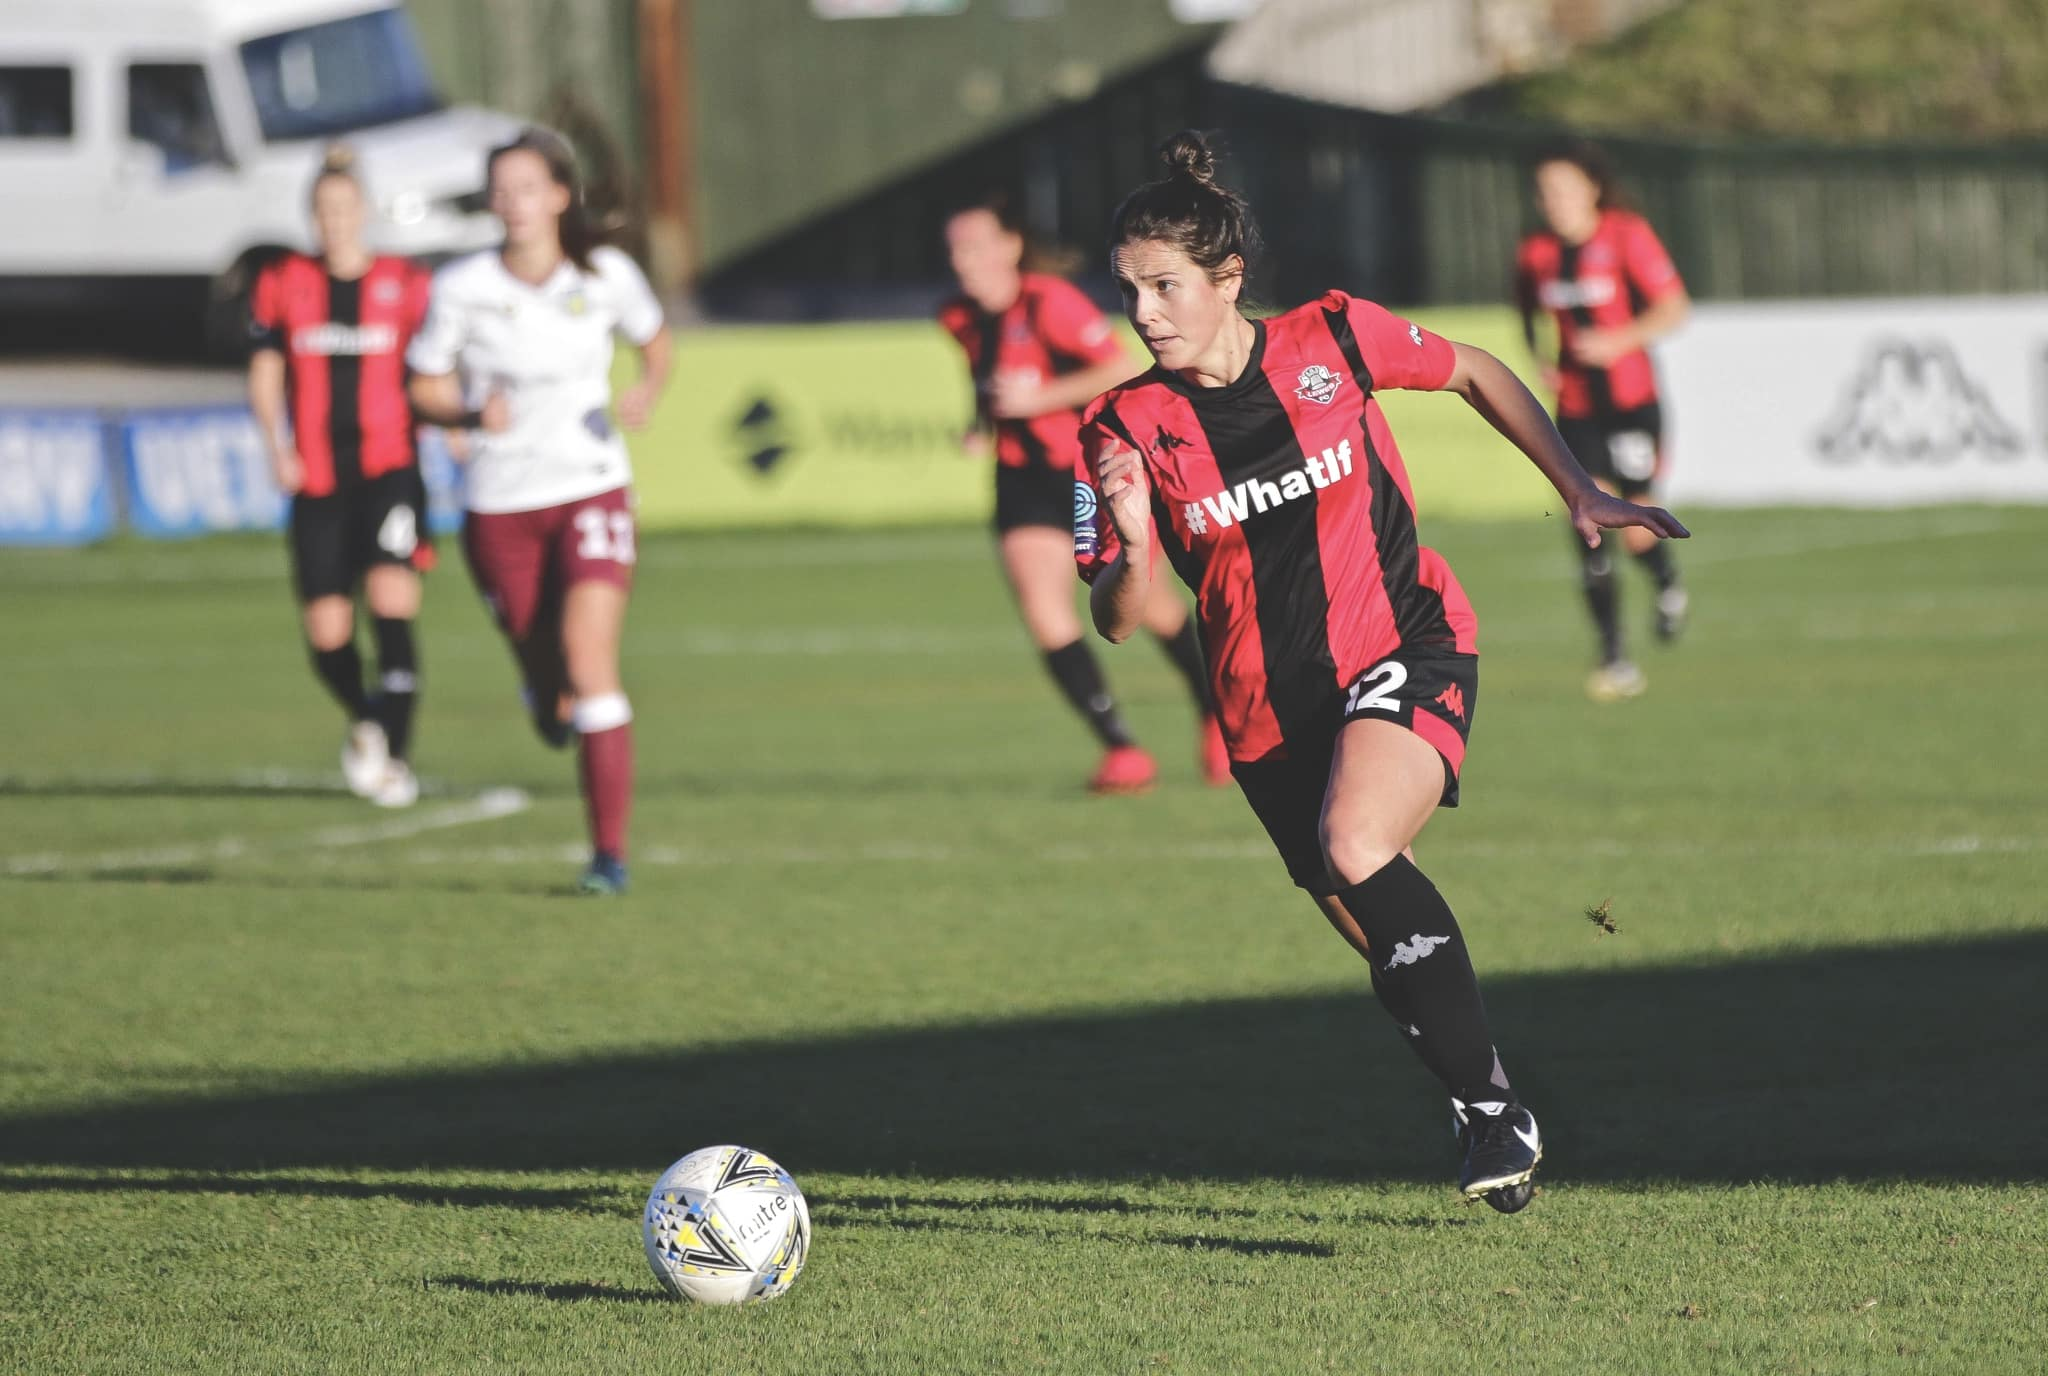 Lewes FC Women 1-1 Aston Villa Ladies. Photo by James Boyes